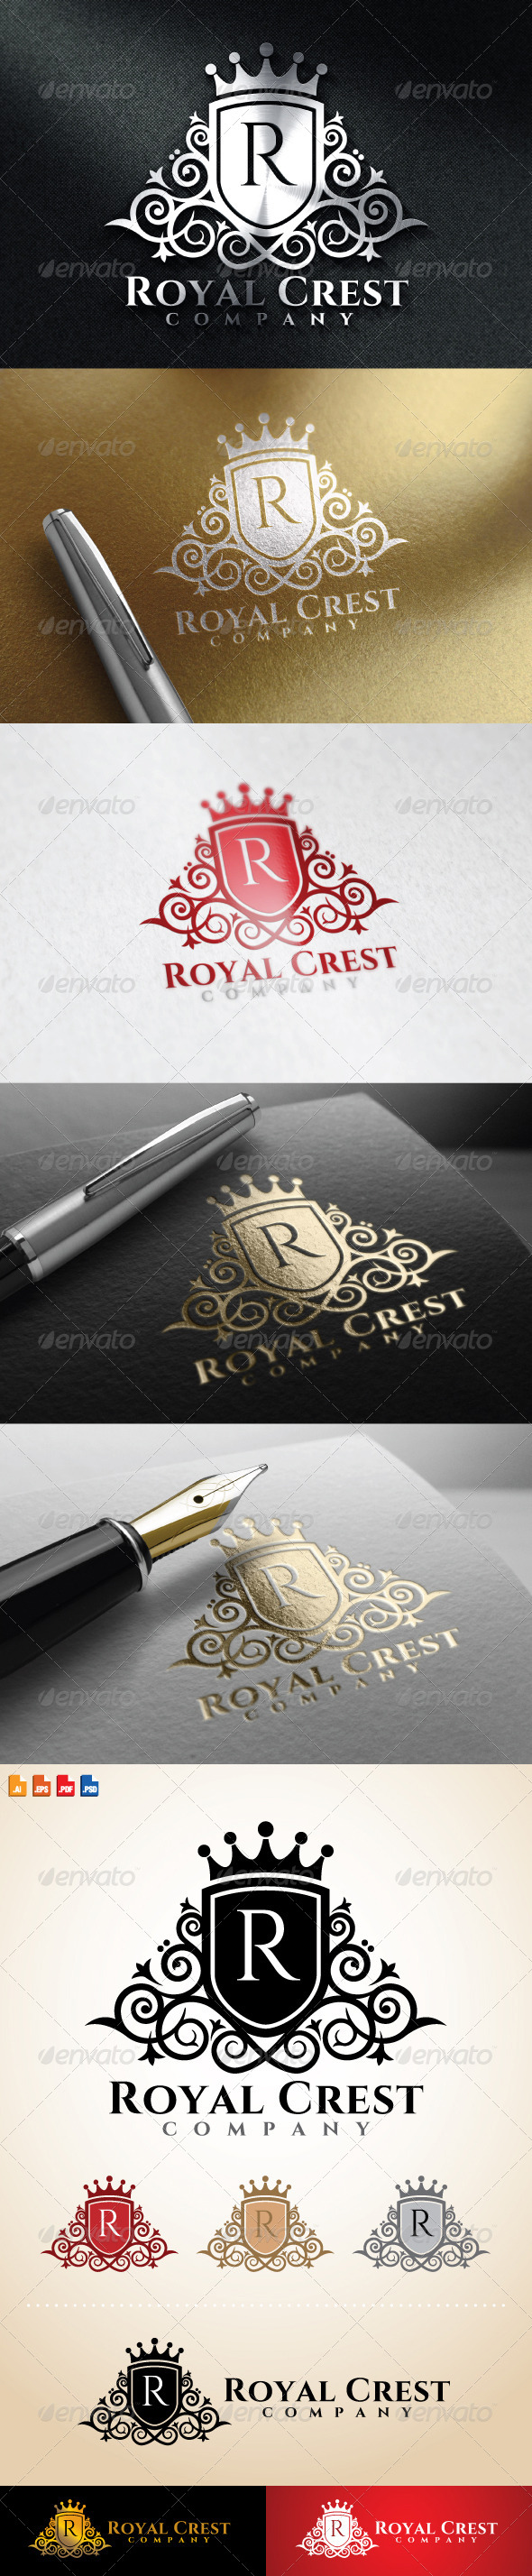 GraphicRiver Royal Crest Logo 8630792